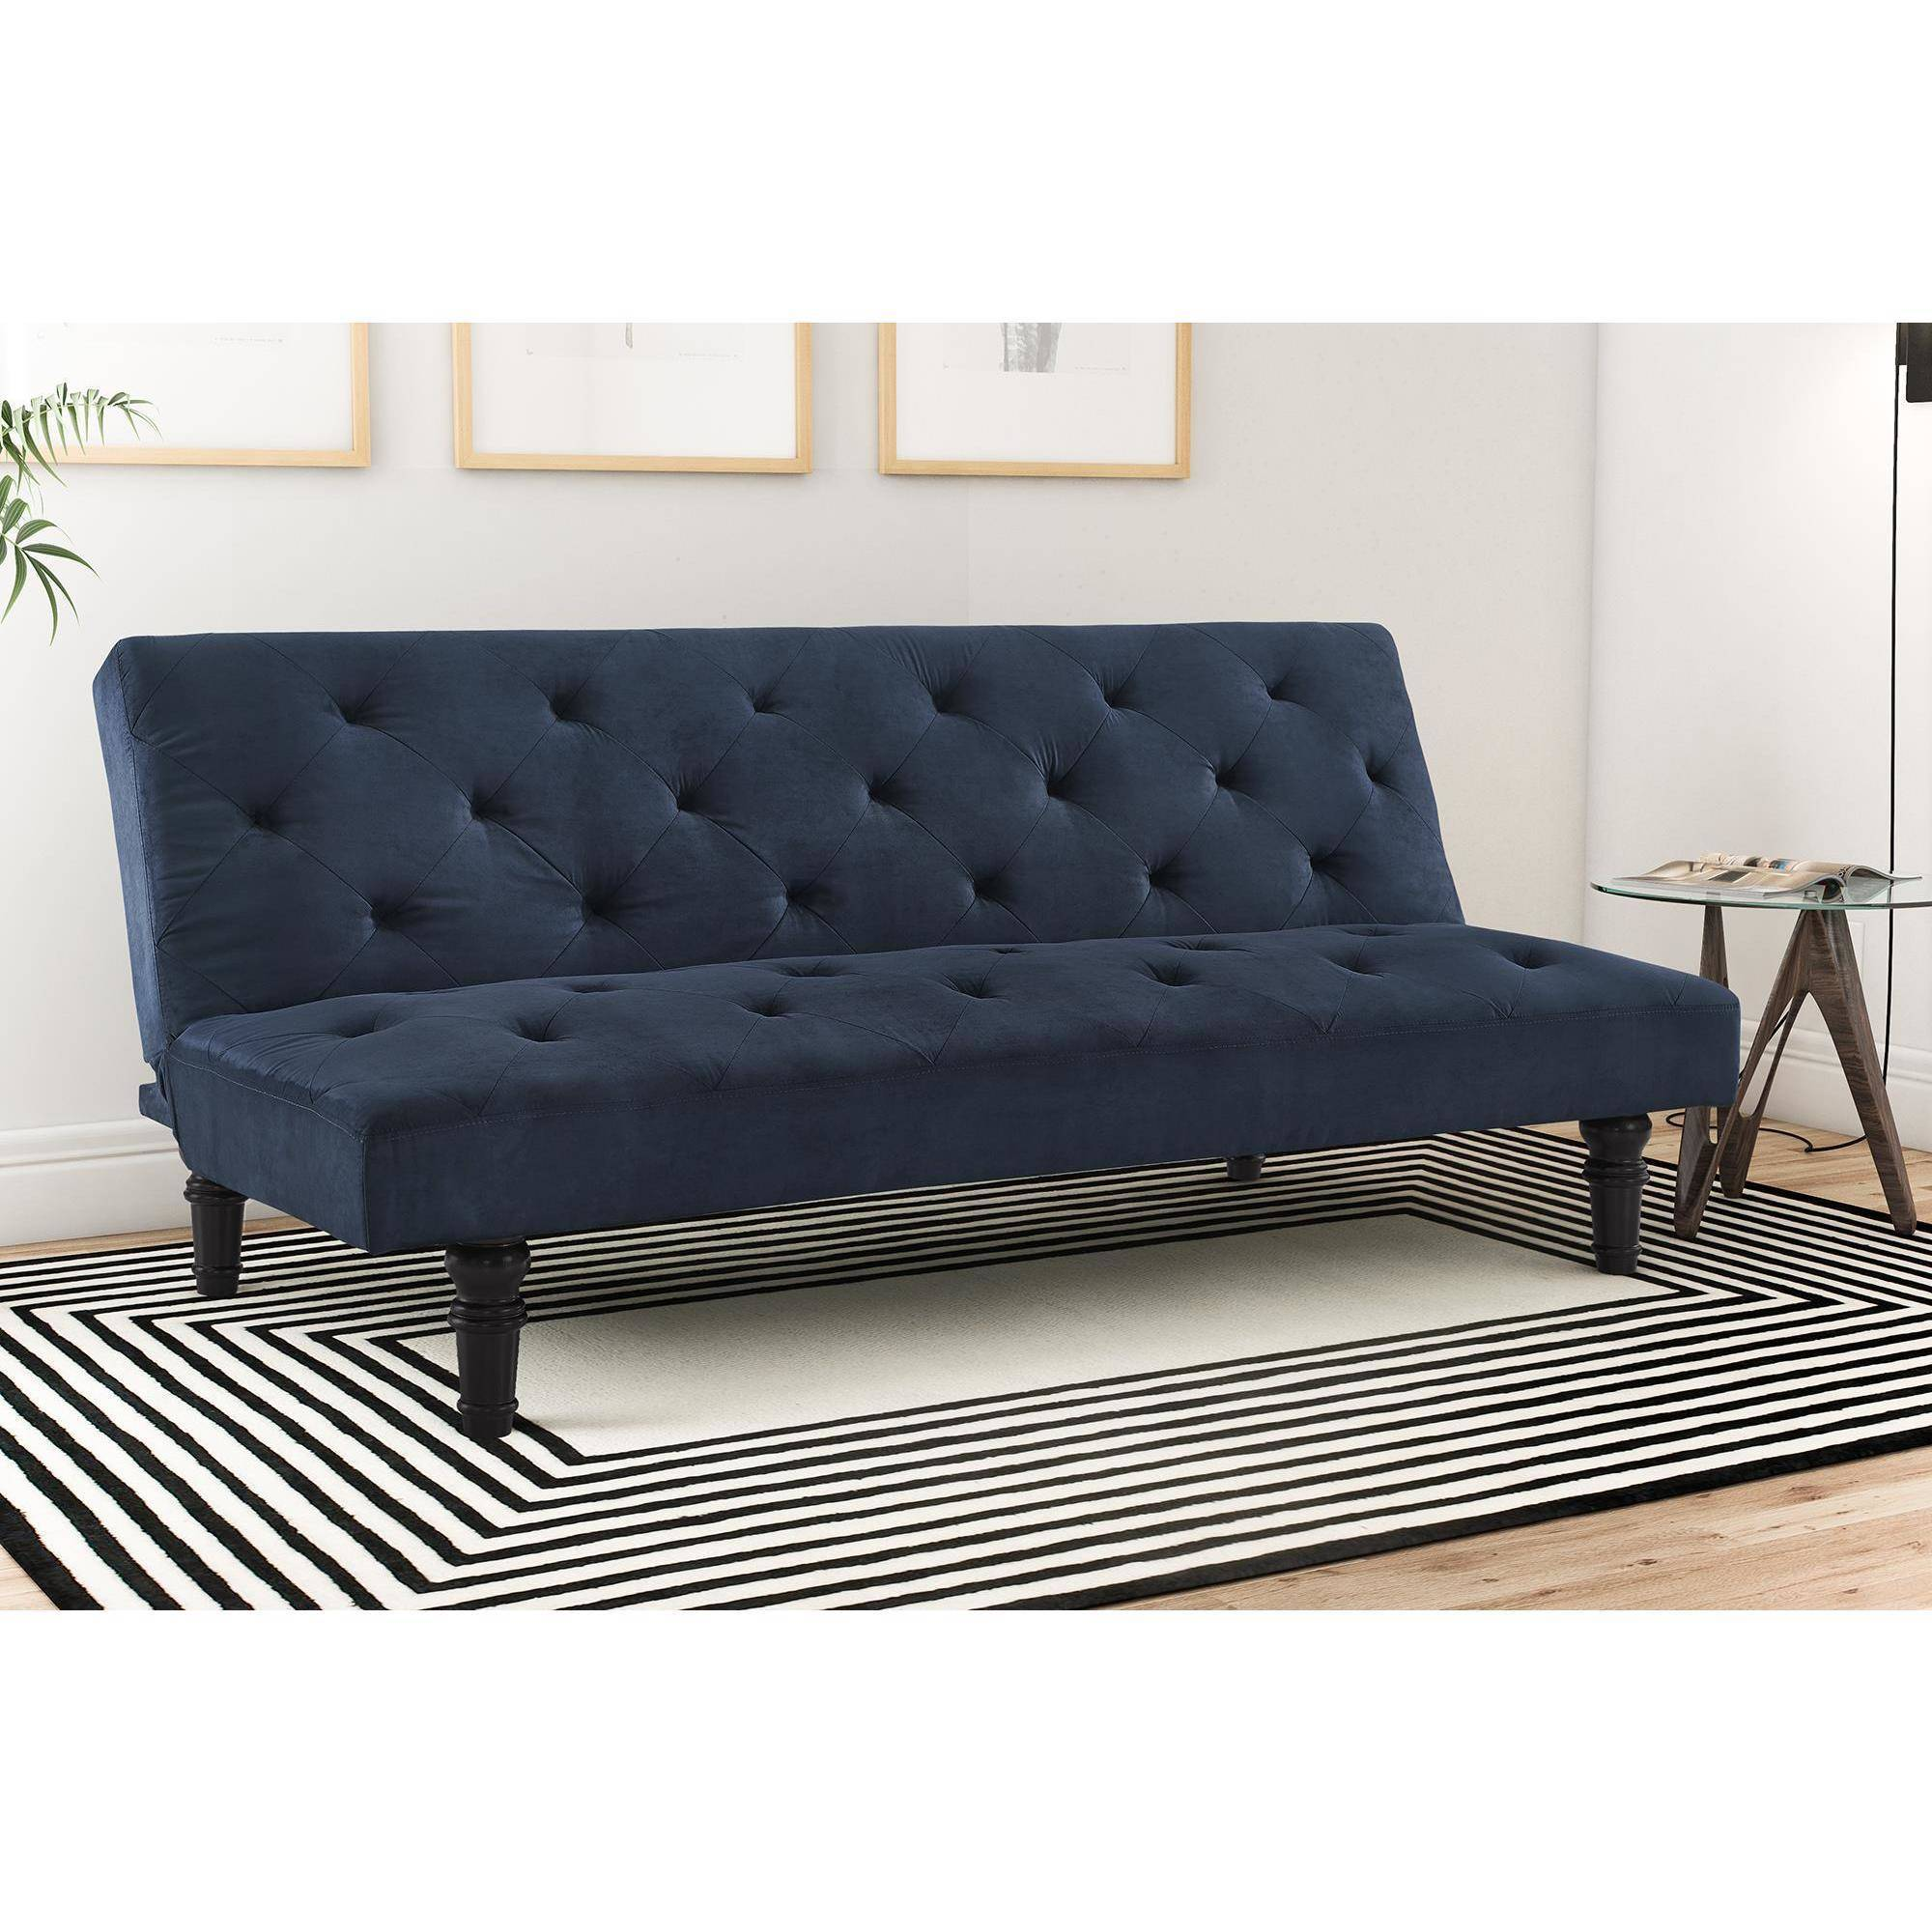 Dorel Home Products Orfino Velour Futon Multiple Colors Walmart